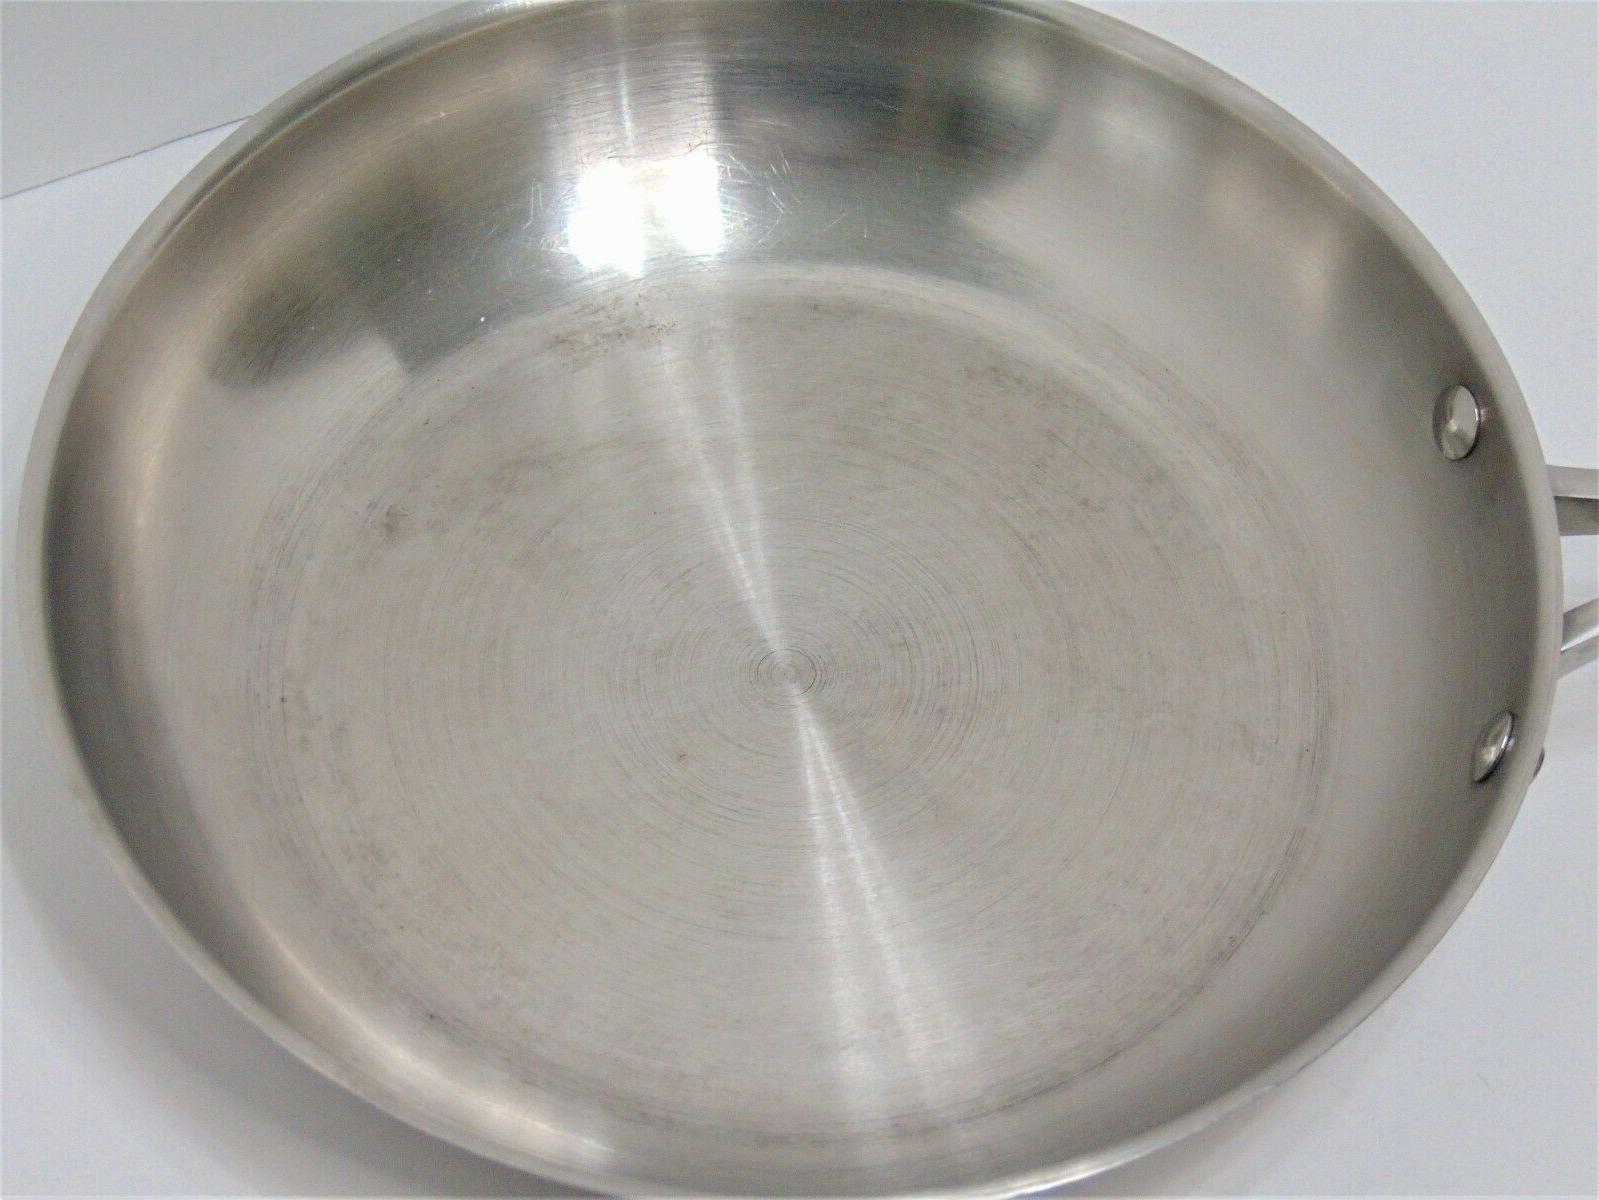 Calphalon Stainless Steel 10 inch Ply Fry 1390